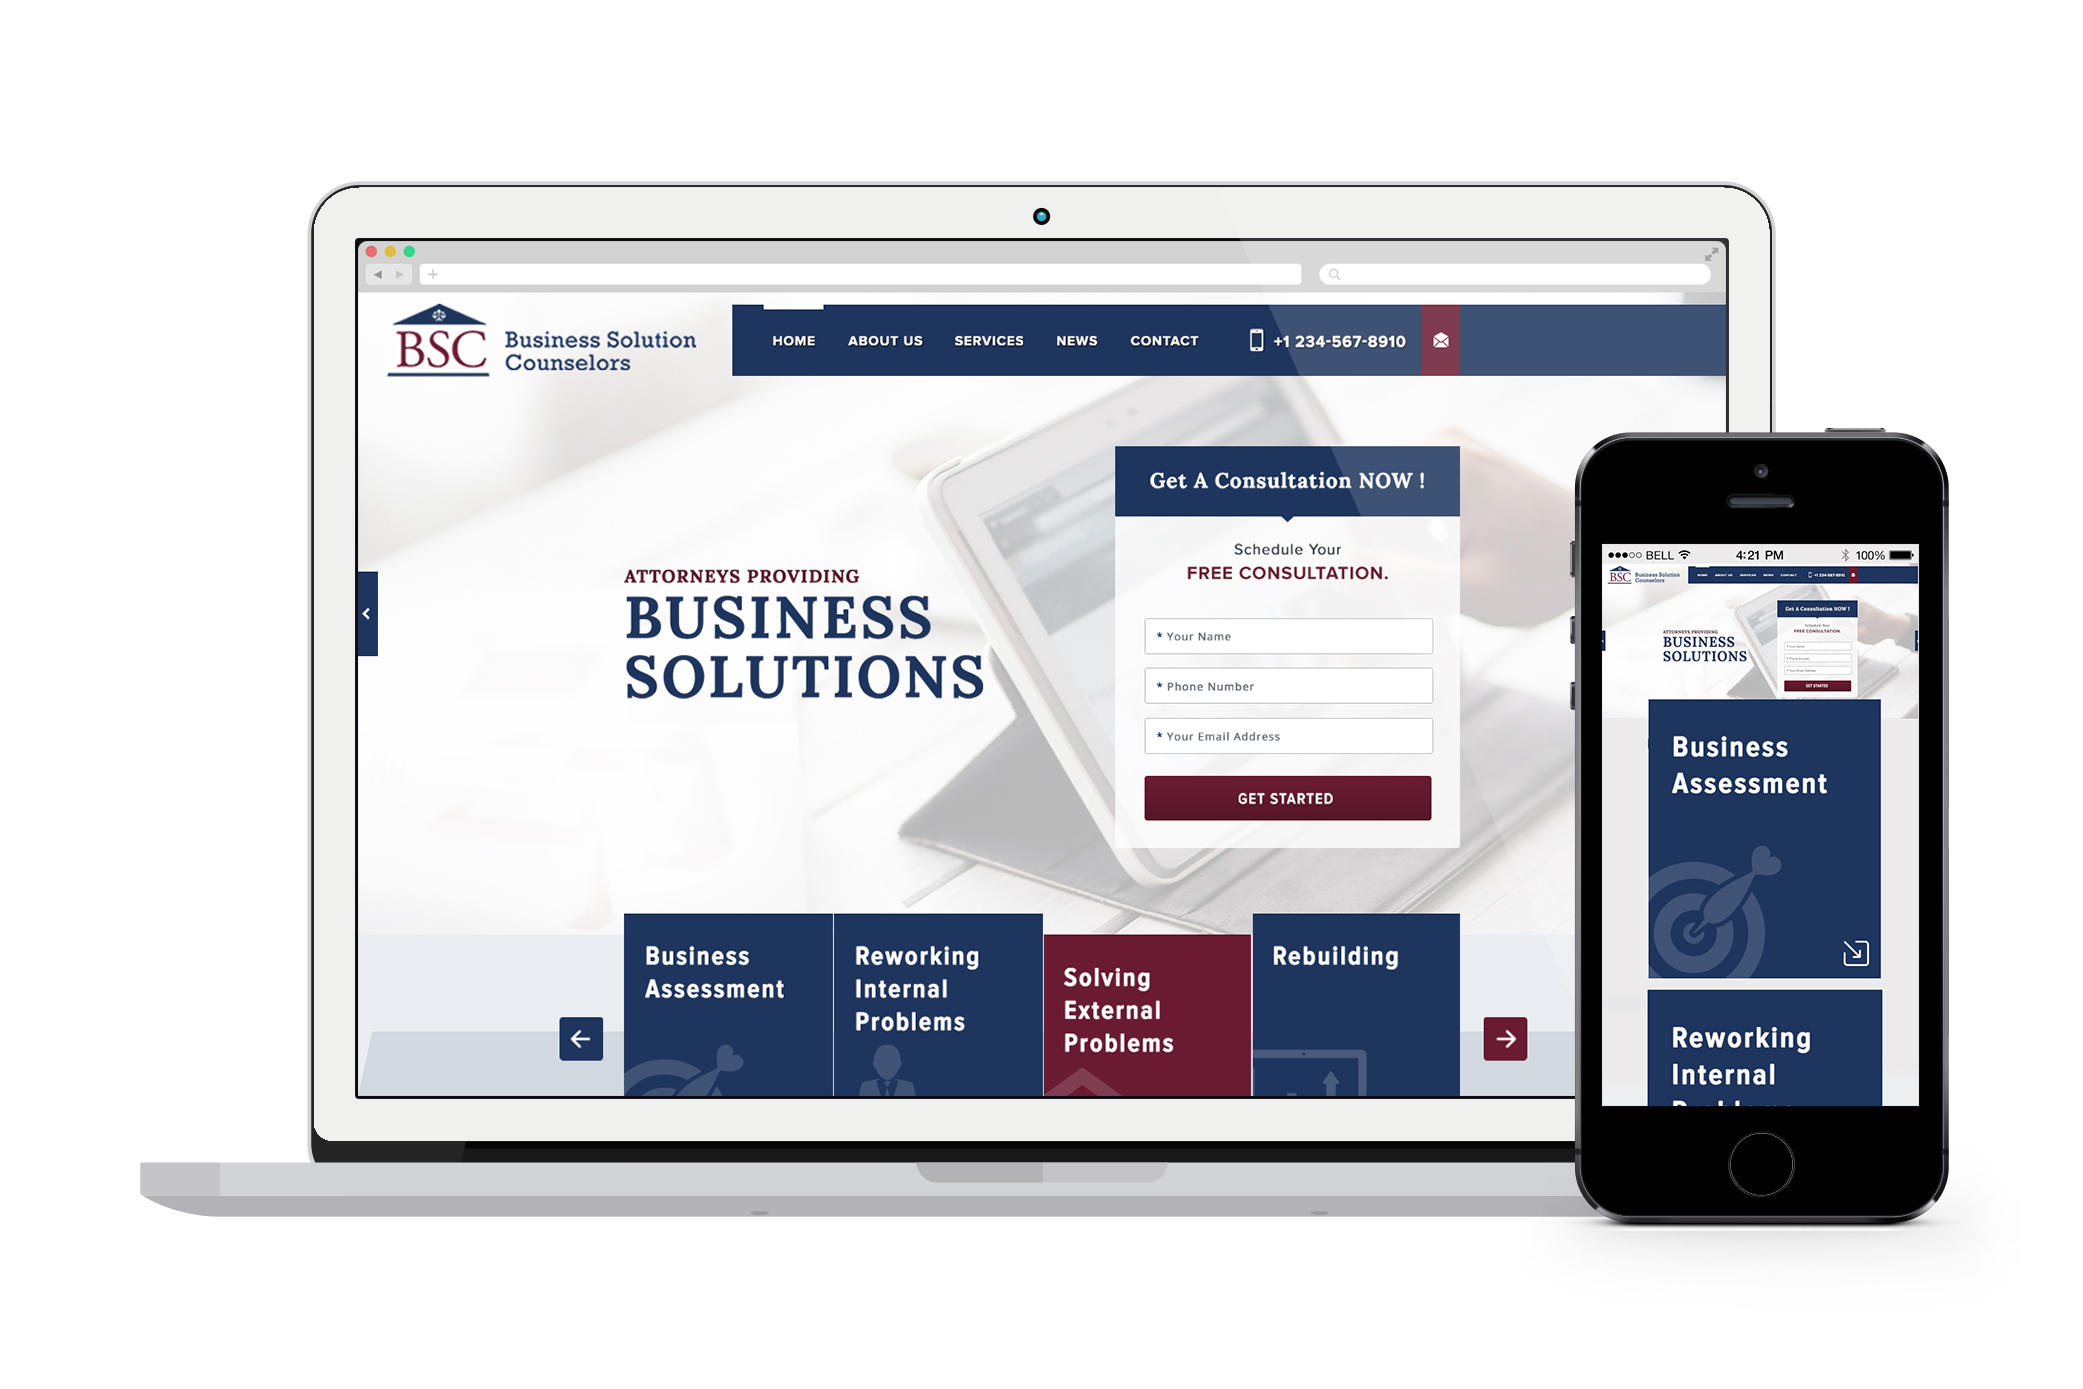 Business Solution Counselors